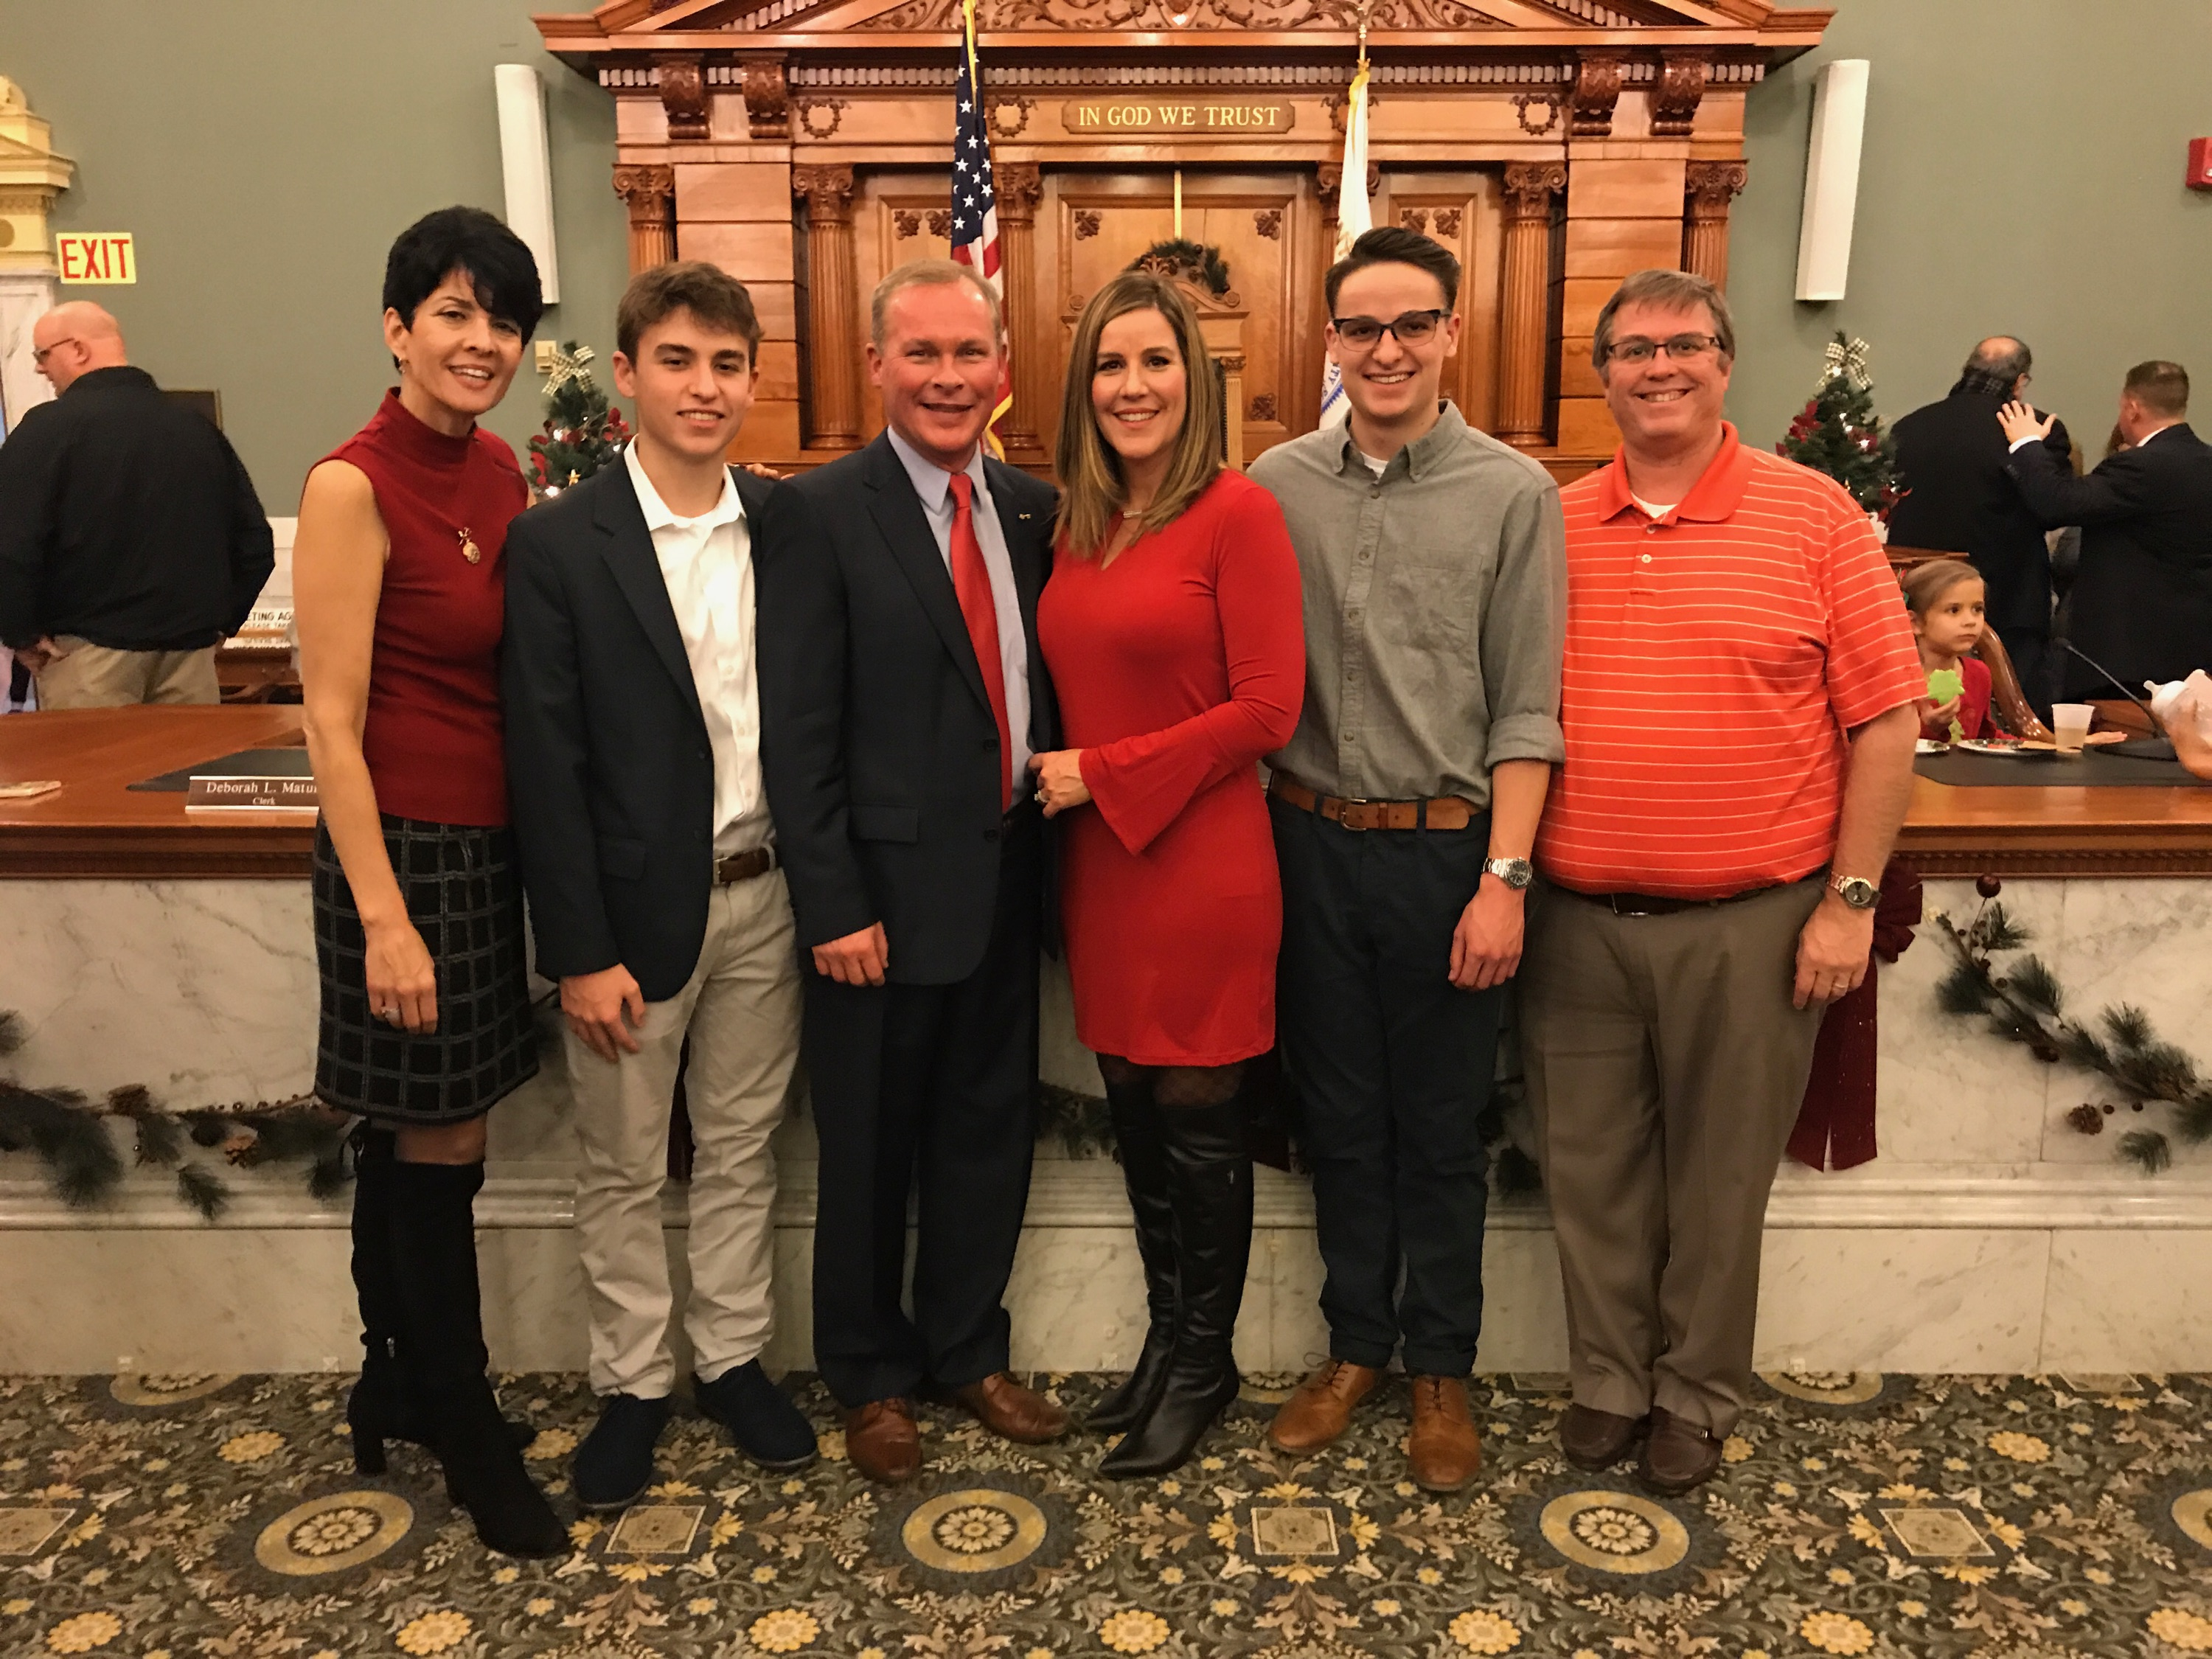 Kevin and family with Hank and Karen swearing in 2018